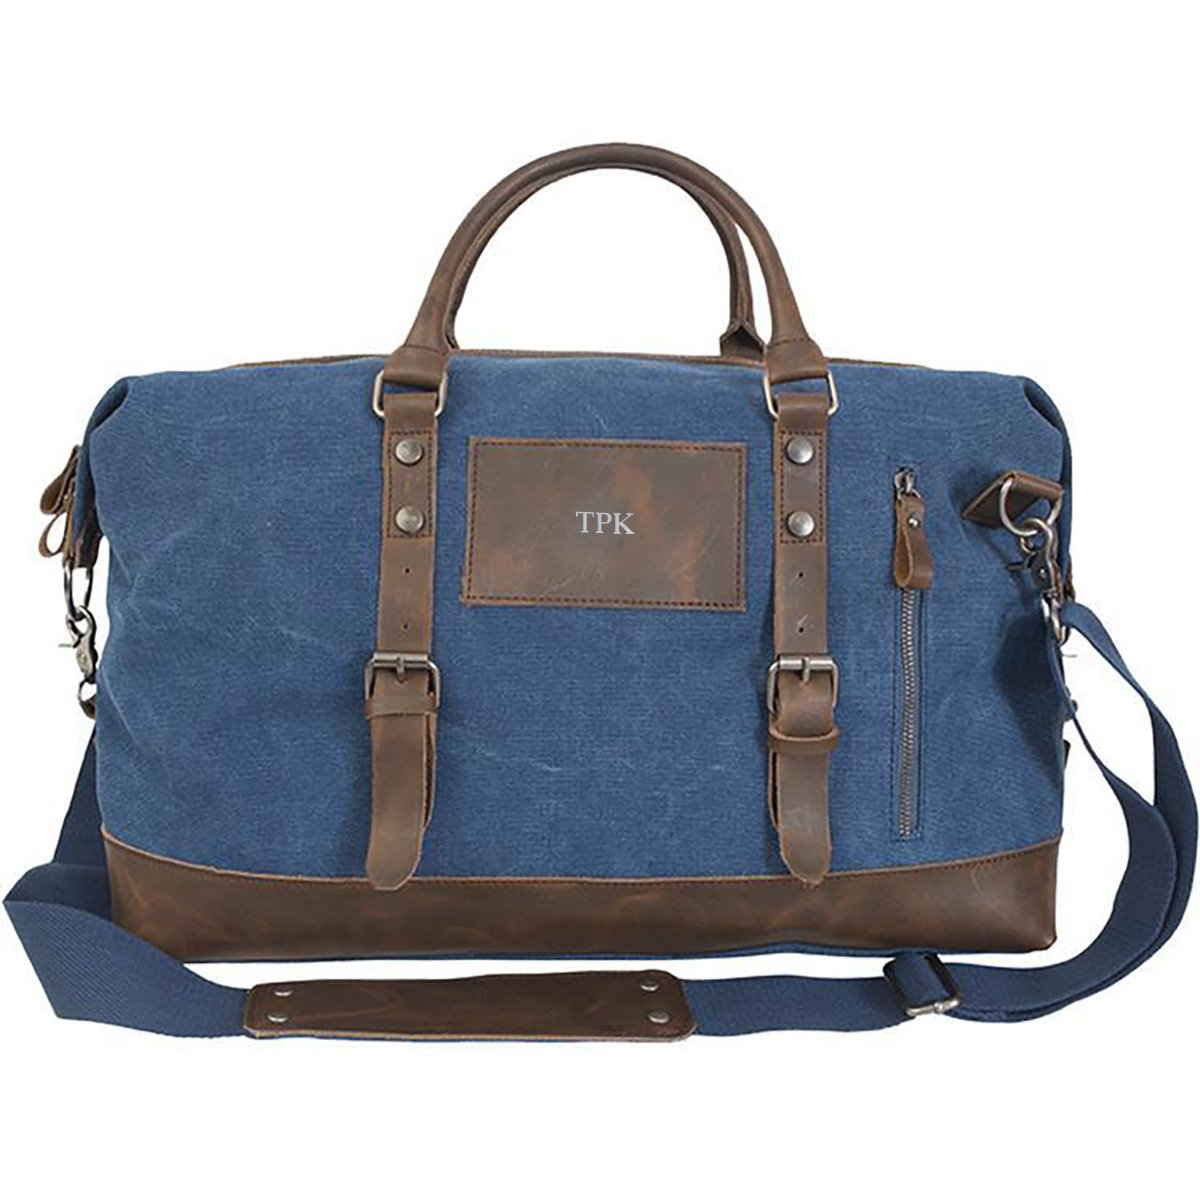 A Gift Personalized Personalized Blue Canvas and Leather Weekender Duffel Bag - Silver